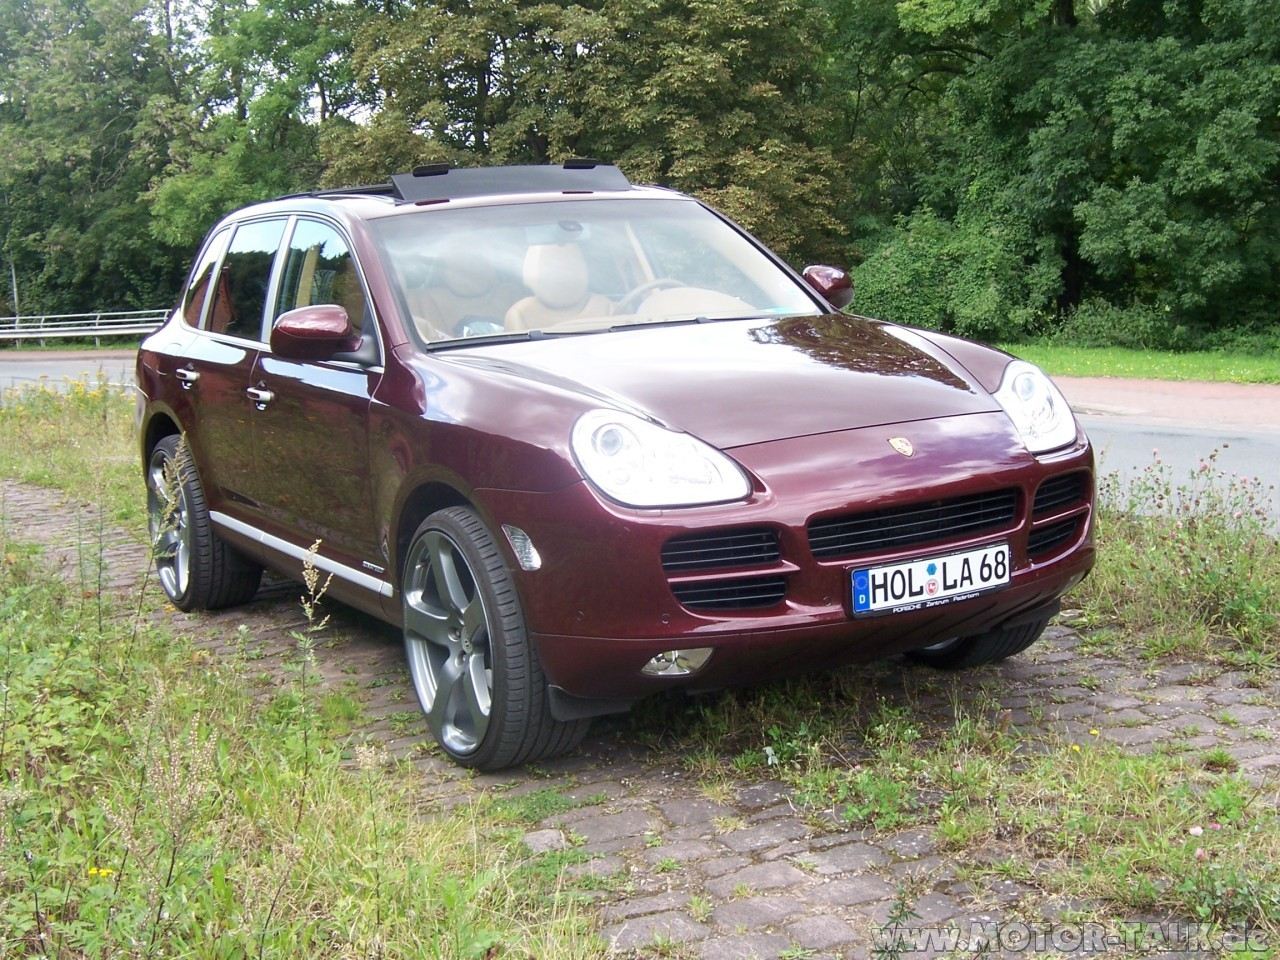 angeben zum polo preis porsche cayenne v6 k smagazin. Black Bedroom Furniture Sets. Home Design Ideas